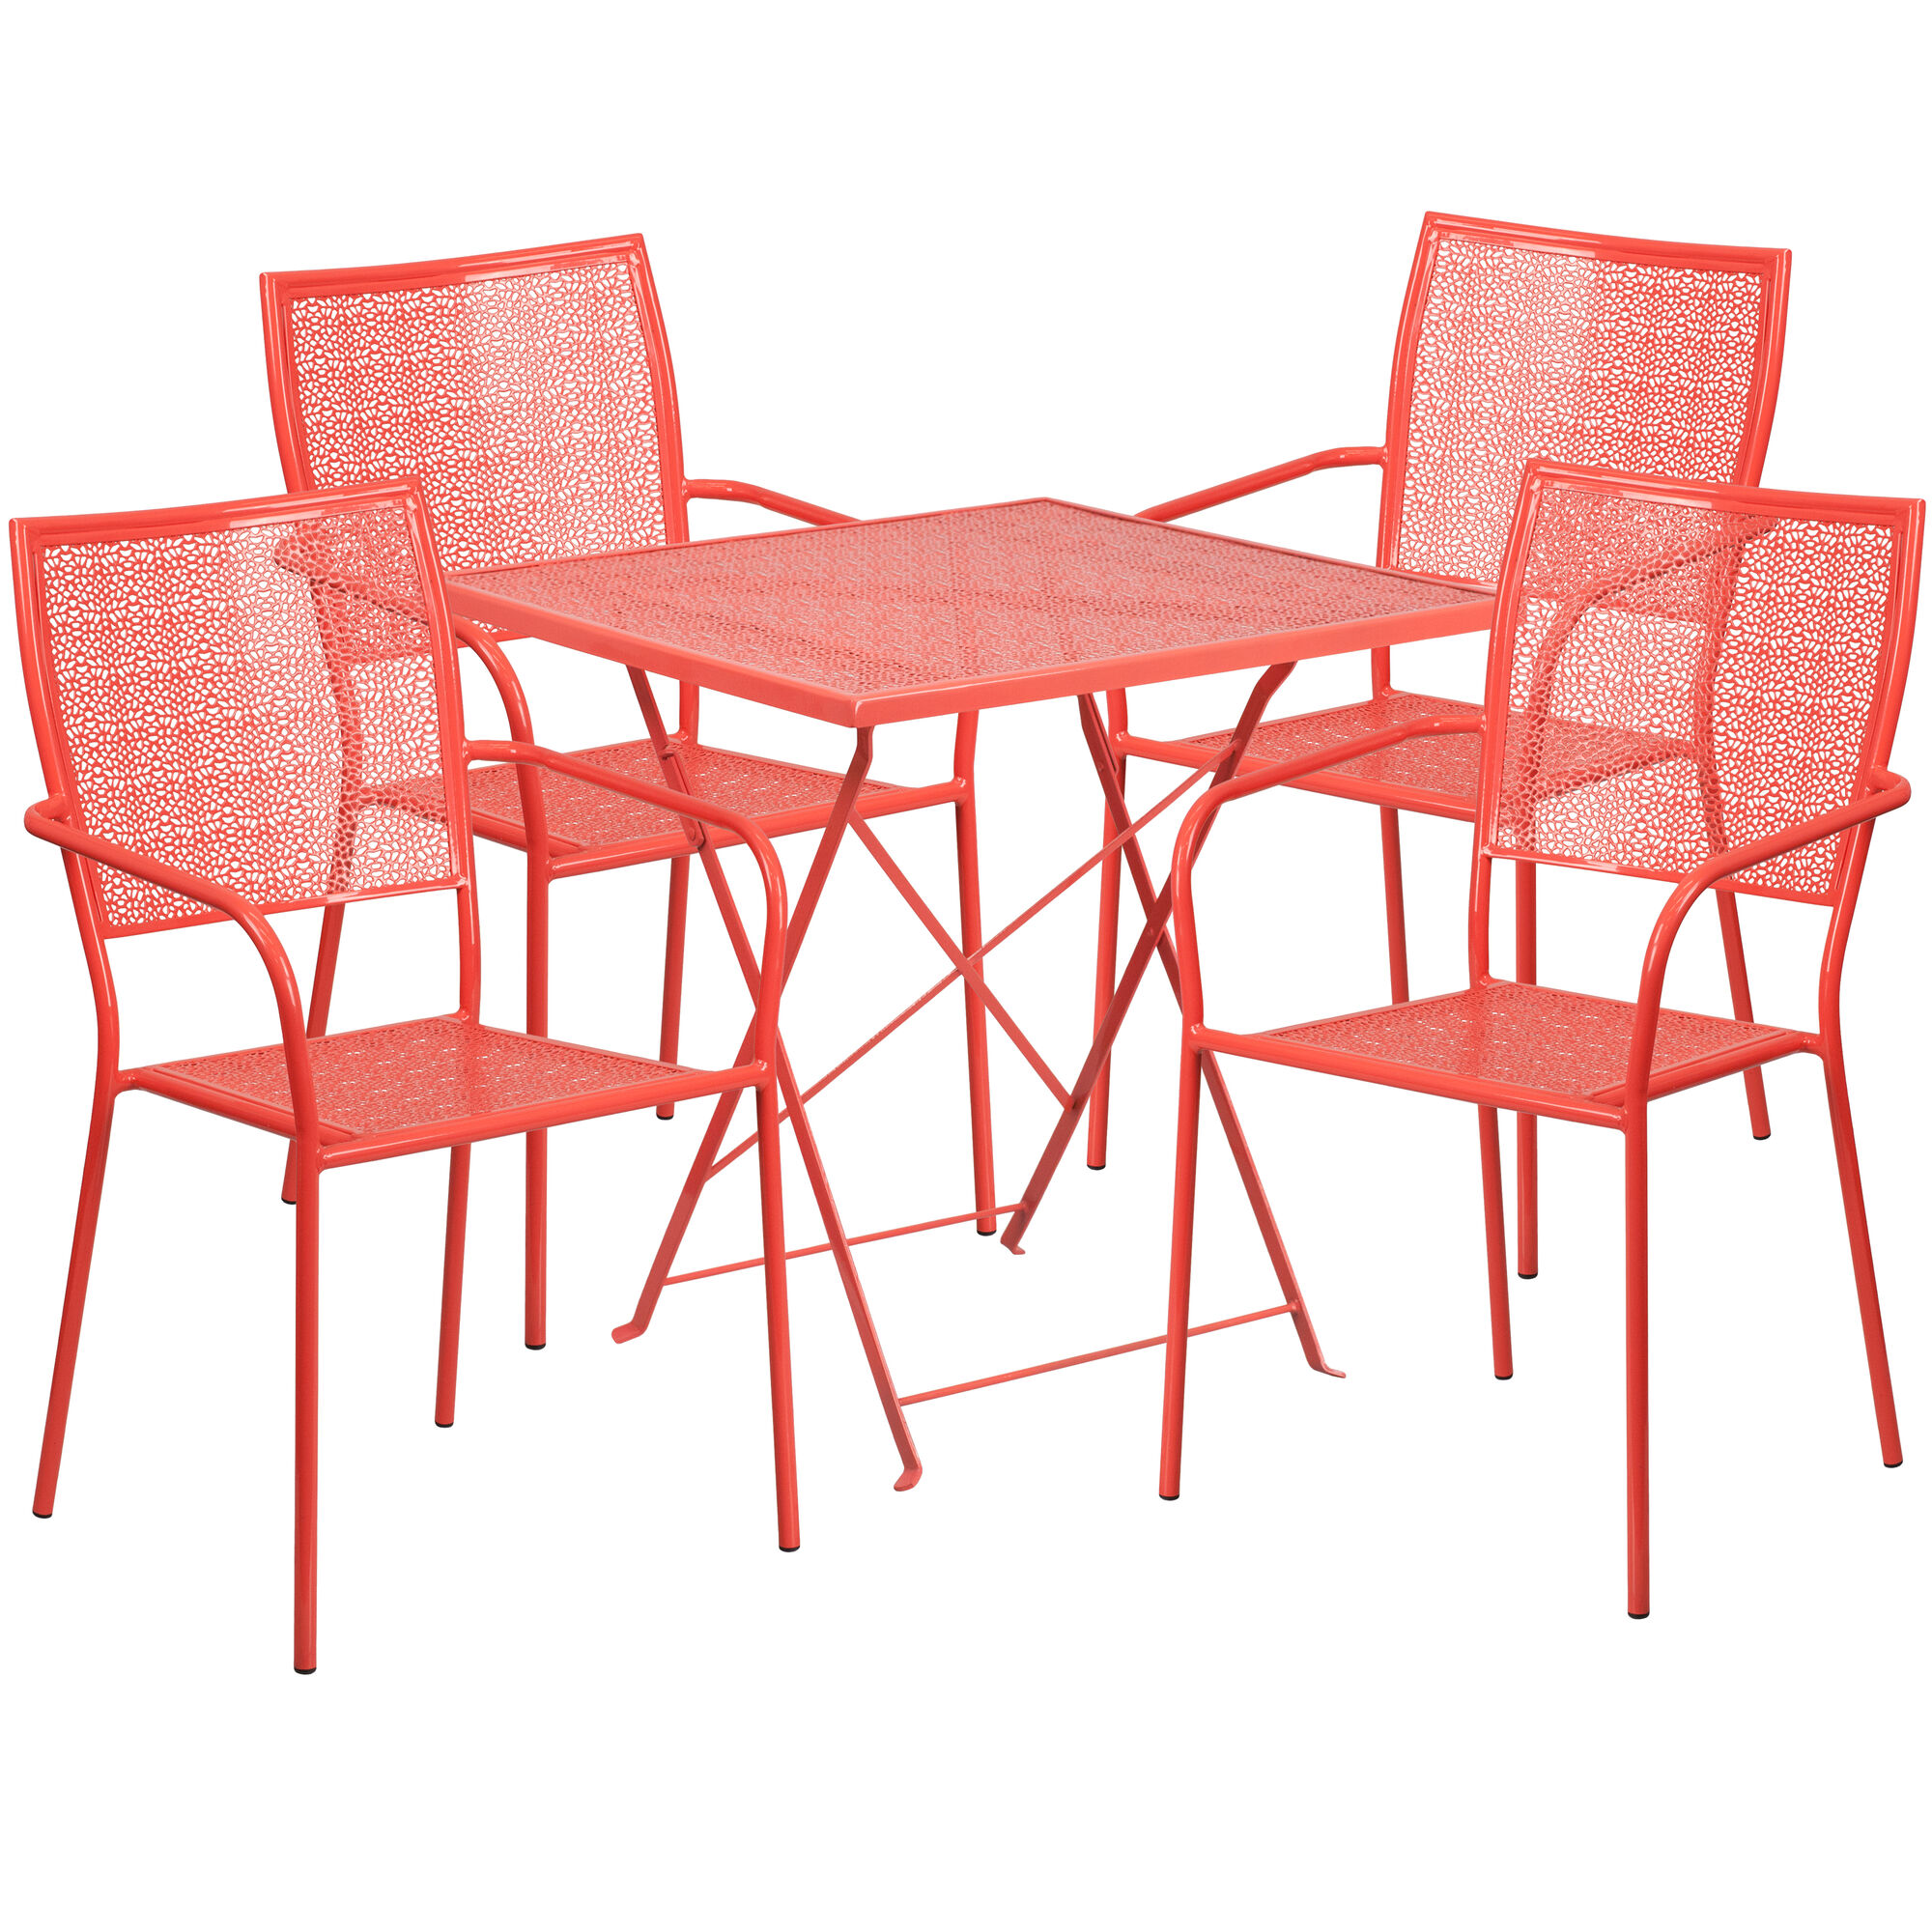 Enjoyable 28 Square Coral Indoor Outdoor Steel Folding Patio Table Set With 4 Square Back Chairs Gmtry Best Dining Table And Chair Ideas Images Gmtryco